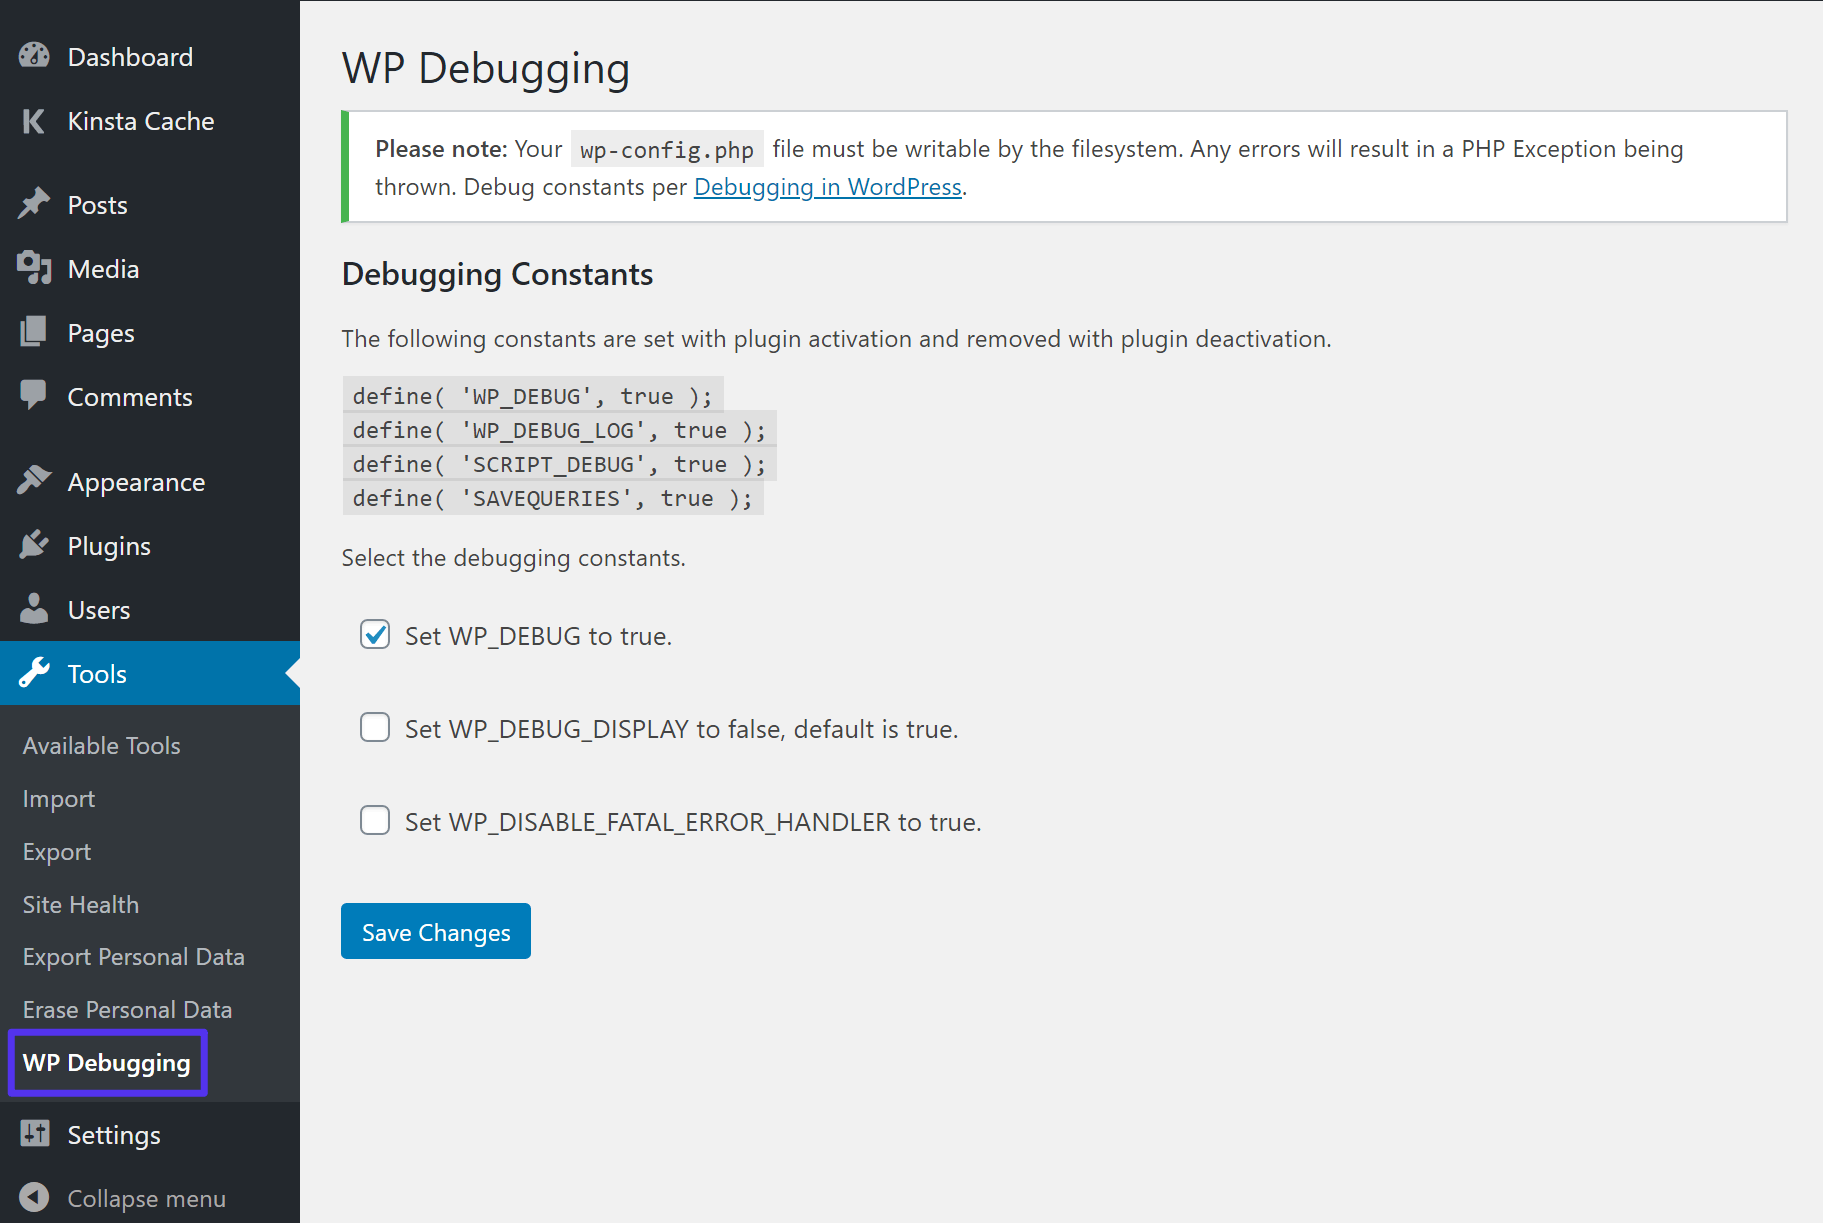 The settings are for the WP Debugging plugin